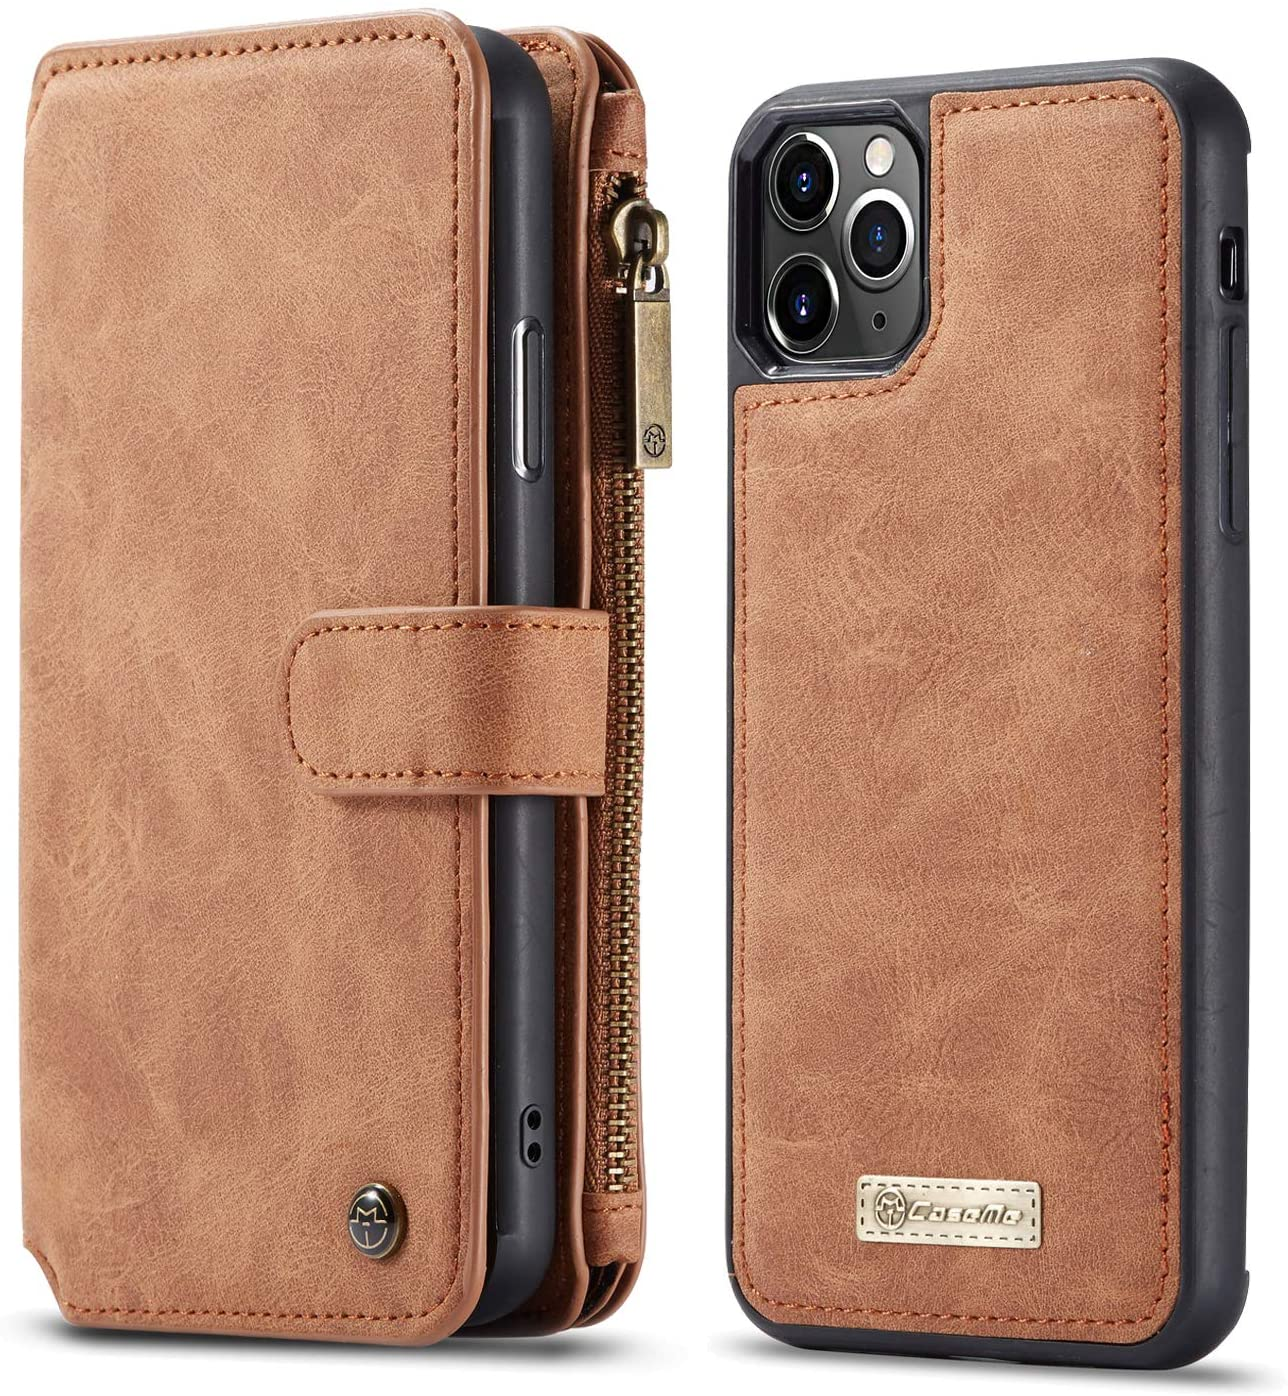 iPhone 11 Flip Case Leather Cover Premium Business Kickstand Card Holders Wallet case